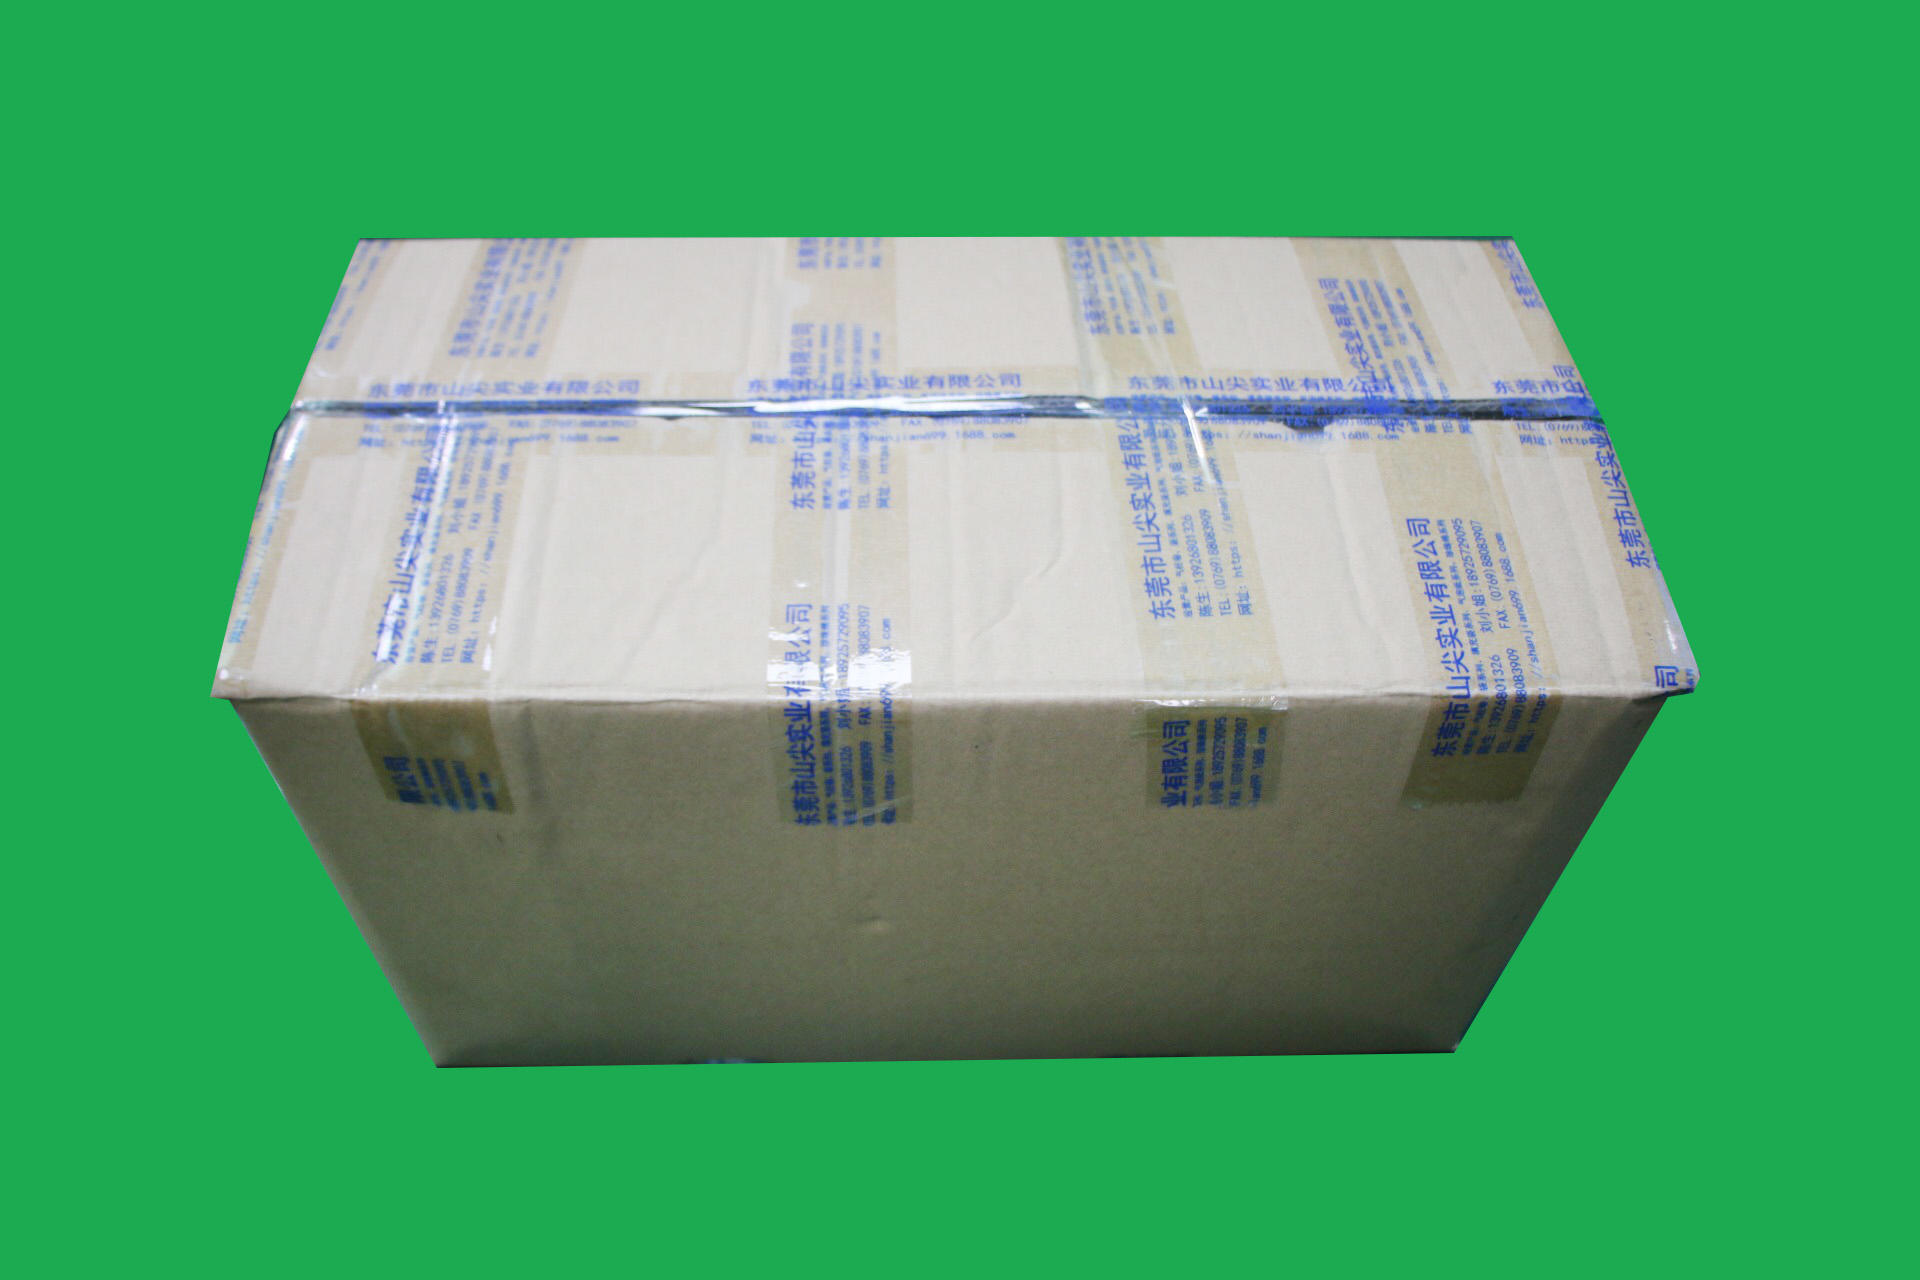 Sunshinepack New air pillow manufacturers india Supply for package